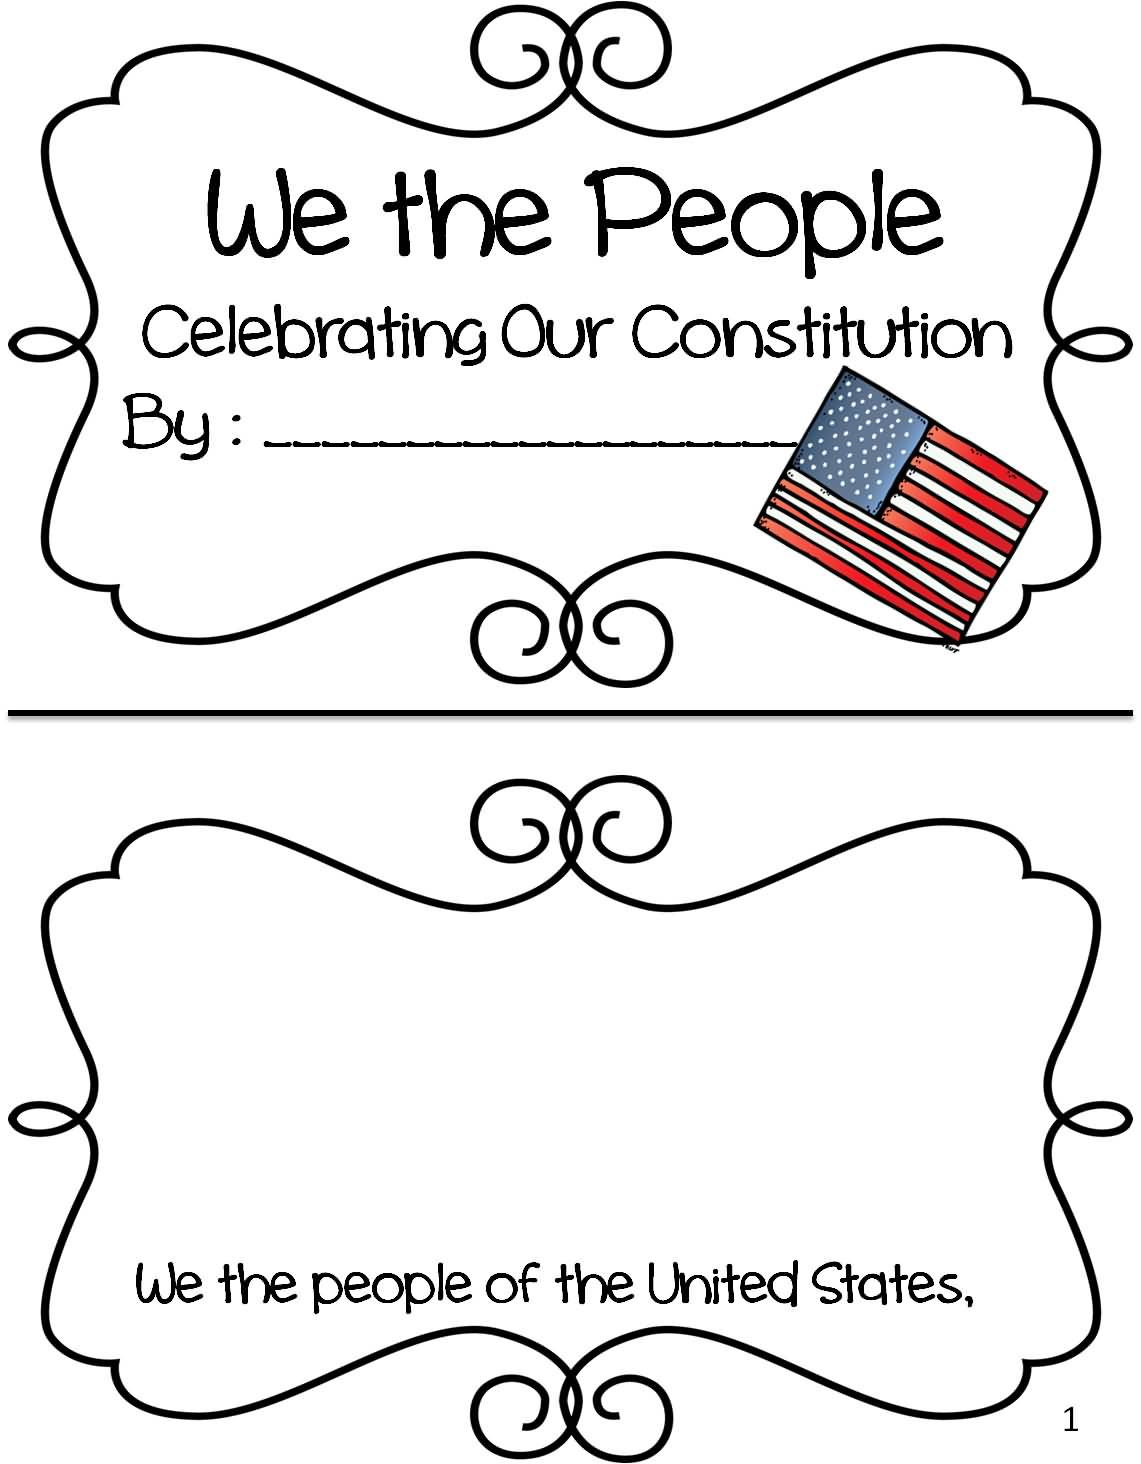 35 Beautiful Constitution Day Greeting Pictures And